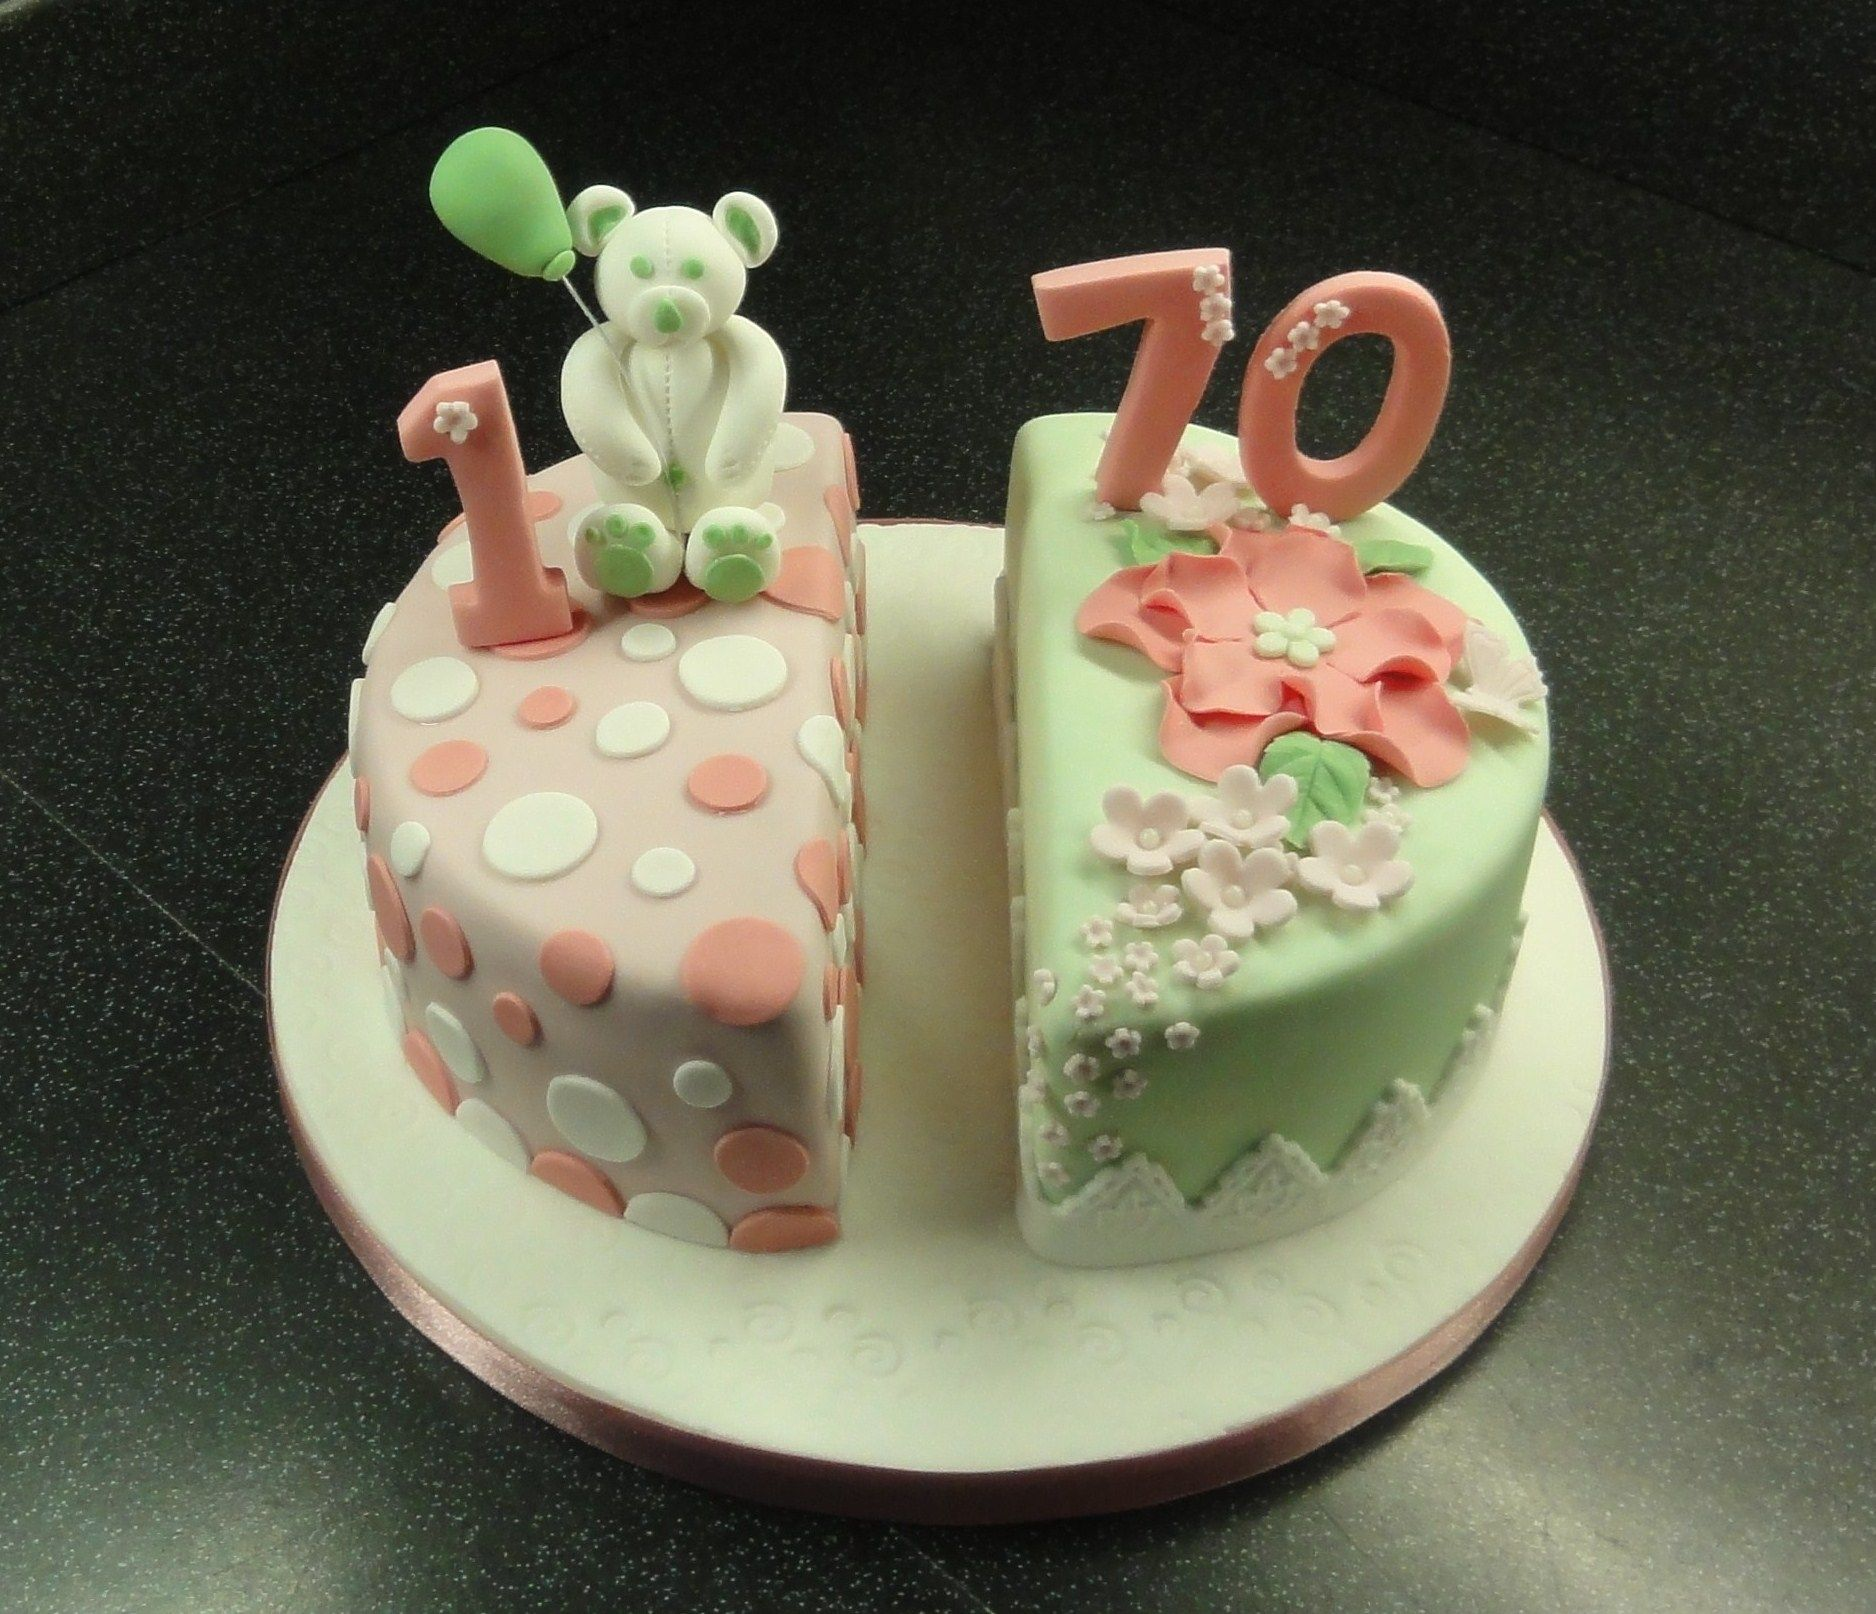 joint birthday cake Great idea Maybe aquawhitered on boy side